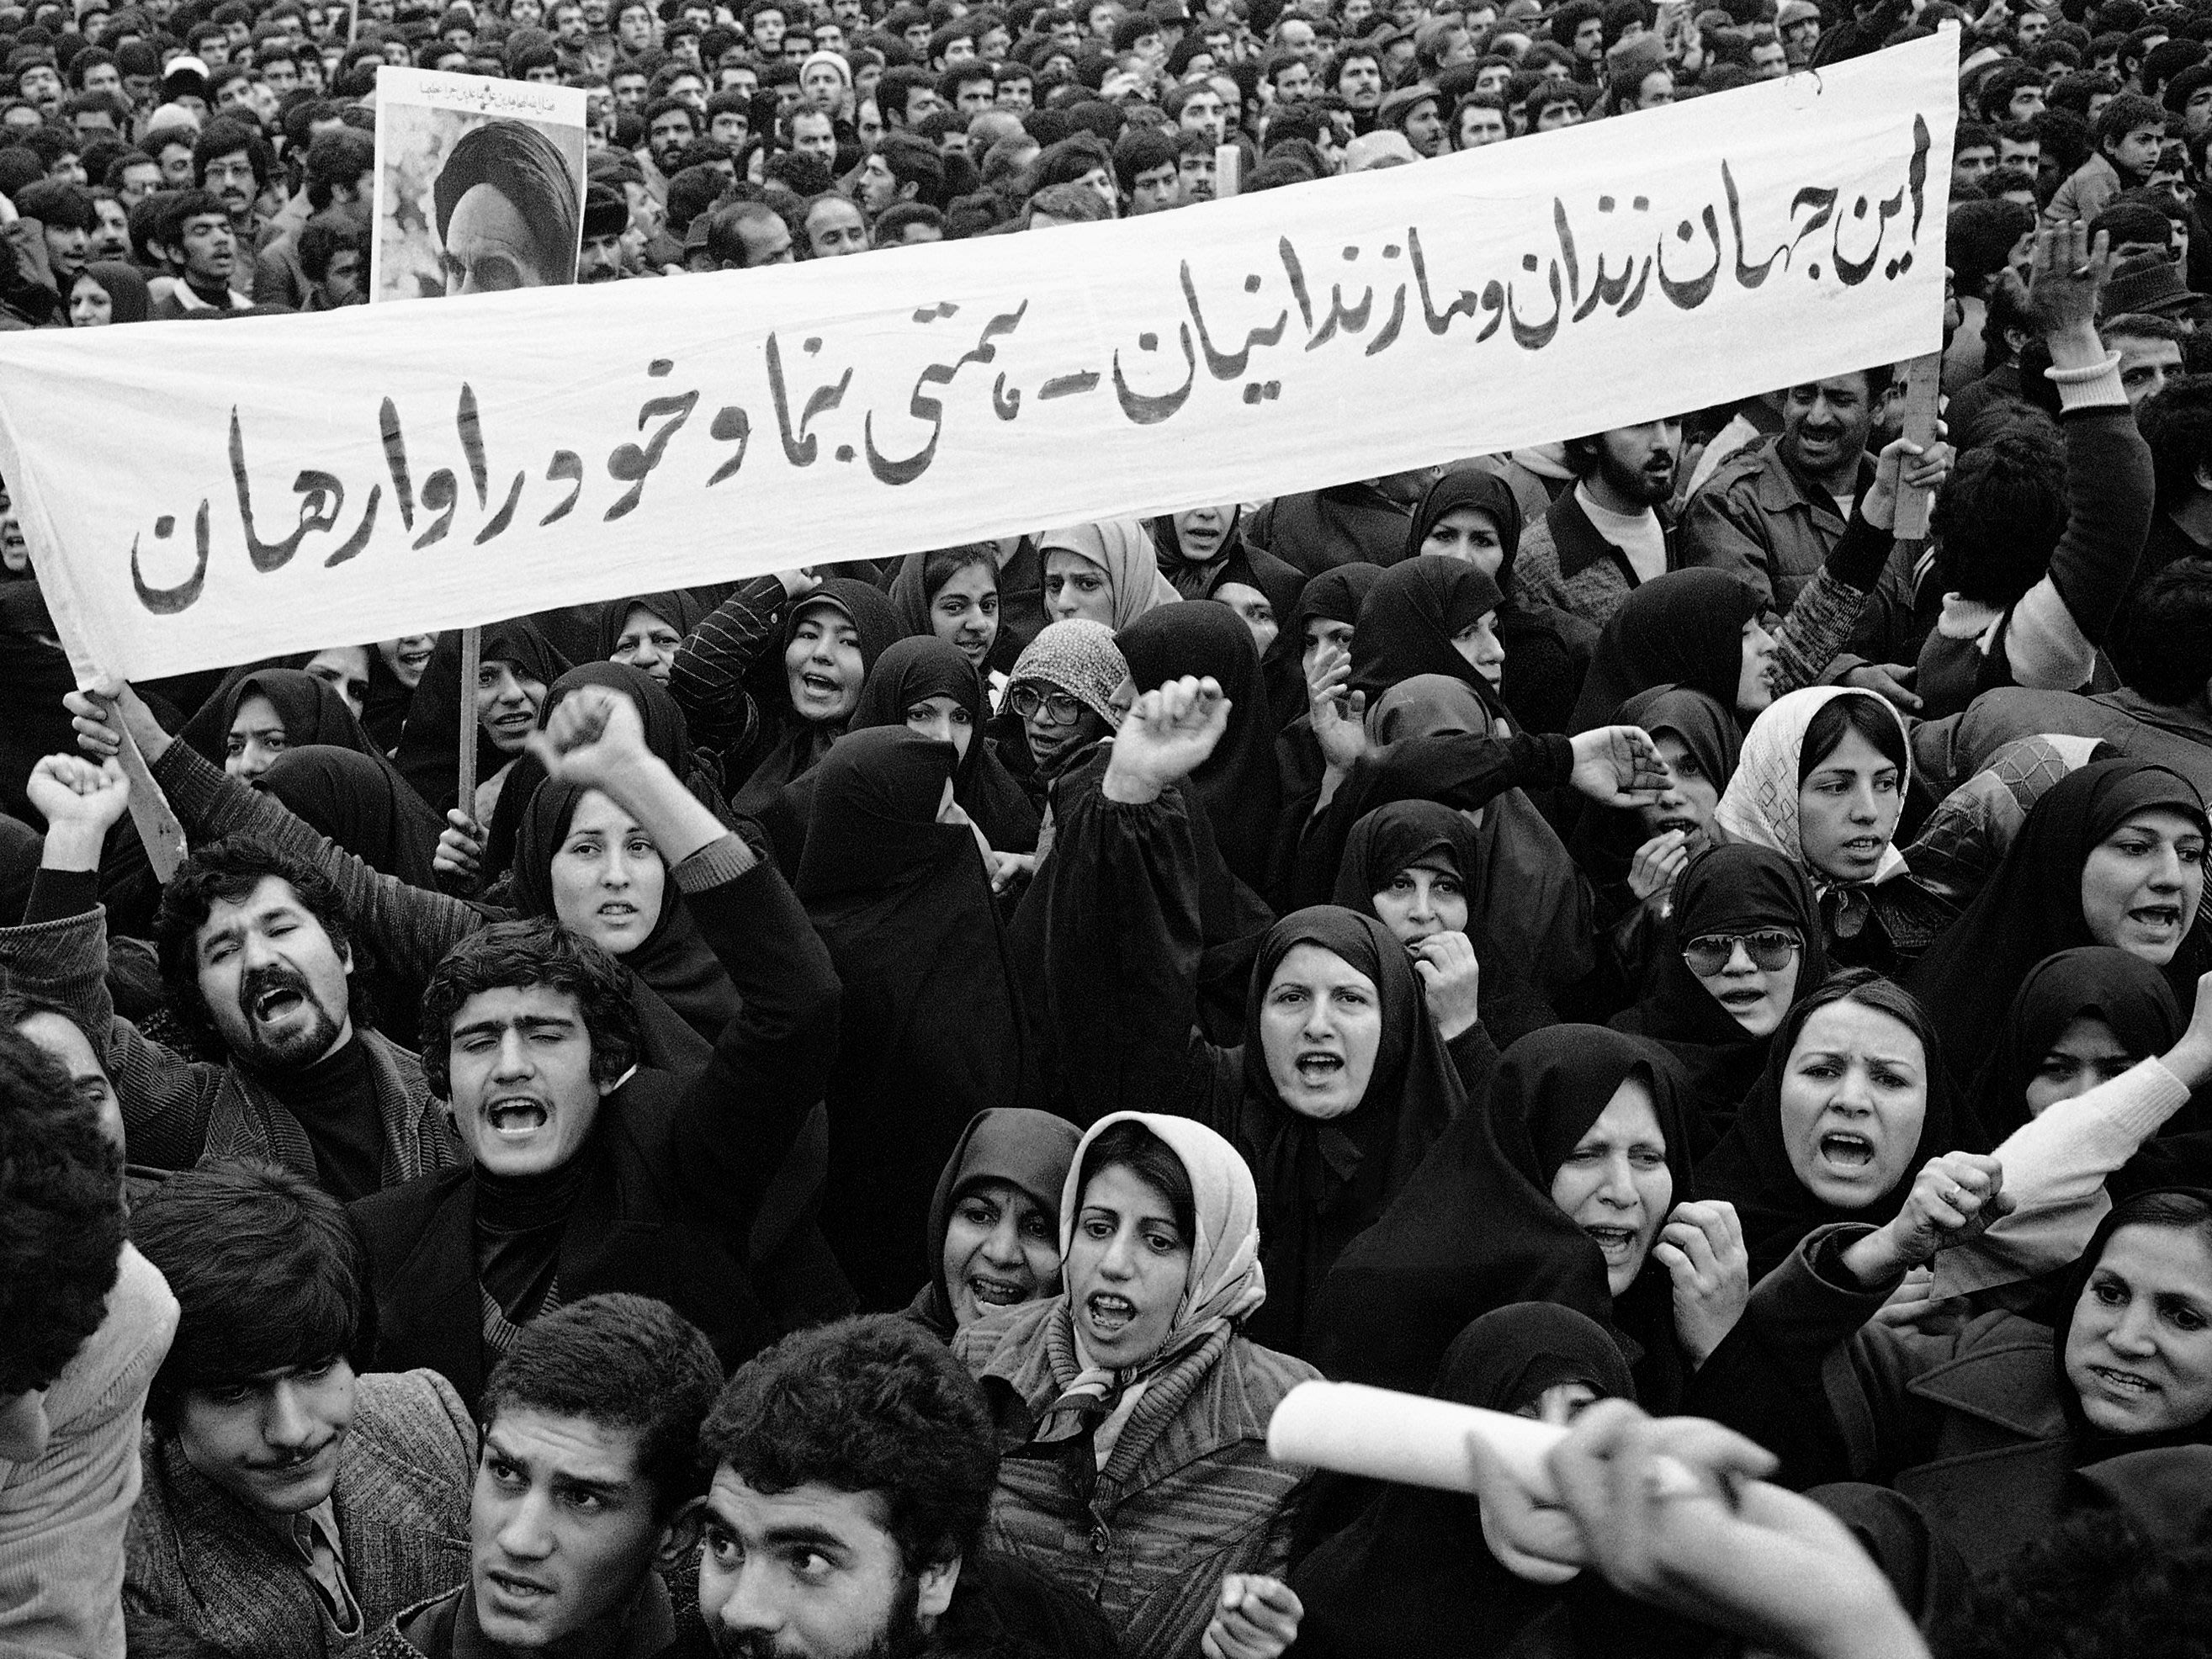 an introduction to the history of the iranian revolution Iranian revolution background [1] the revolution heats up [2] effects [3] bibliography [4] a revolution is a mass movement that aims to establish a new political regime by violently transforming the existing government.